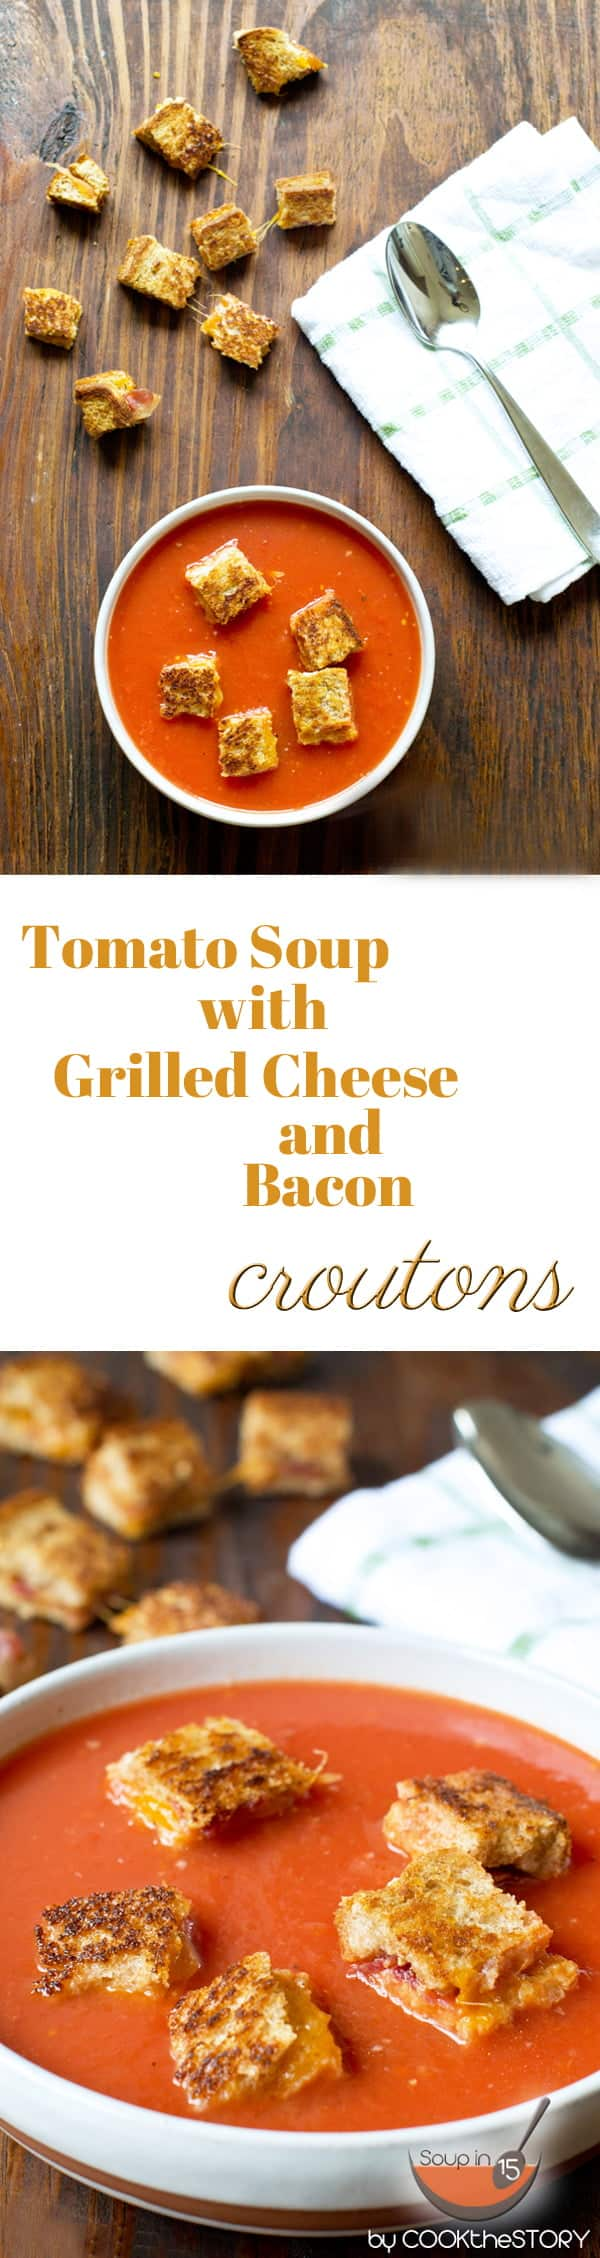 Tomato Soup with Grilled Cheese and Bacon Croutons